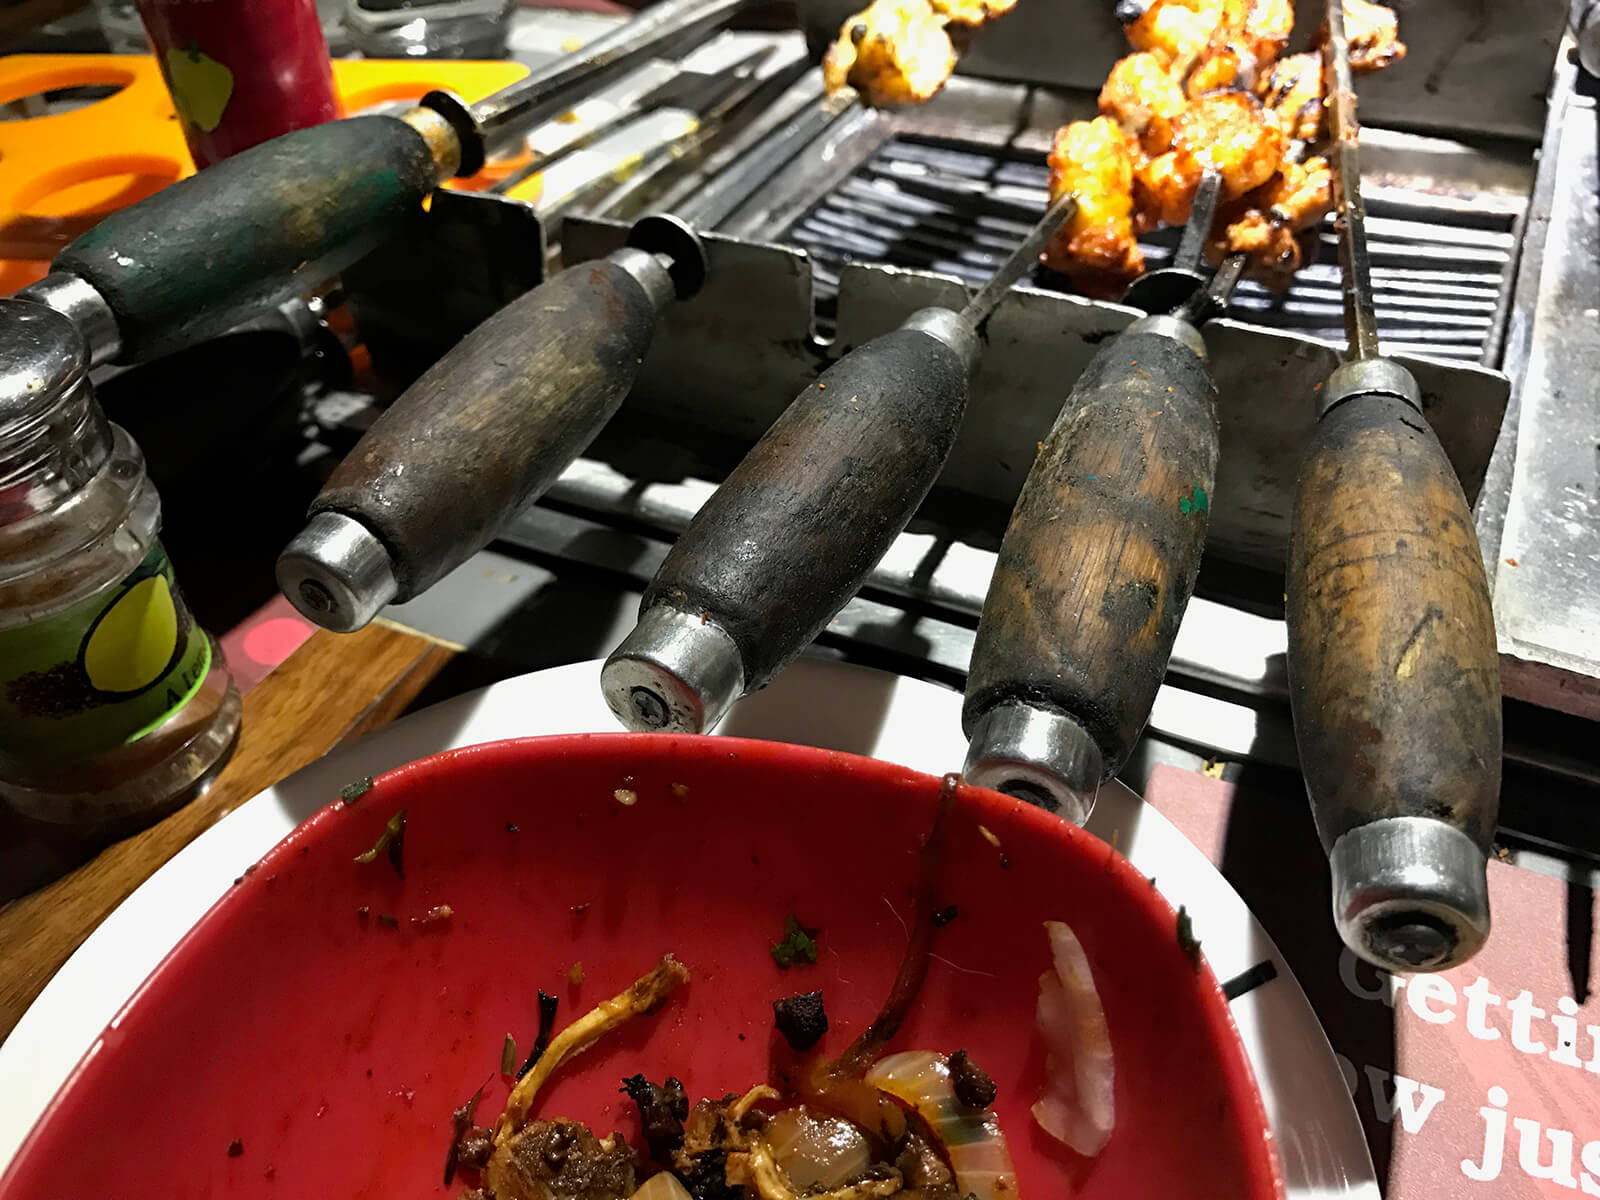 AB's – Absolute Barbecues – All about quantity, not quality!